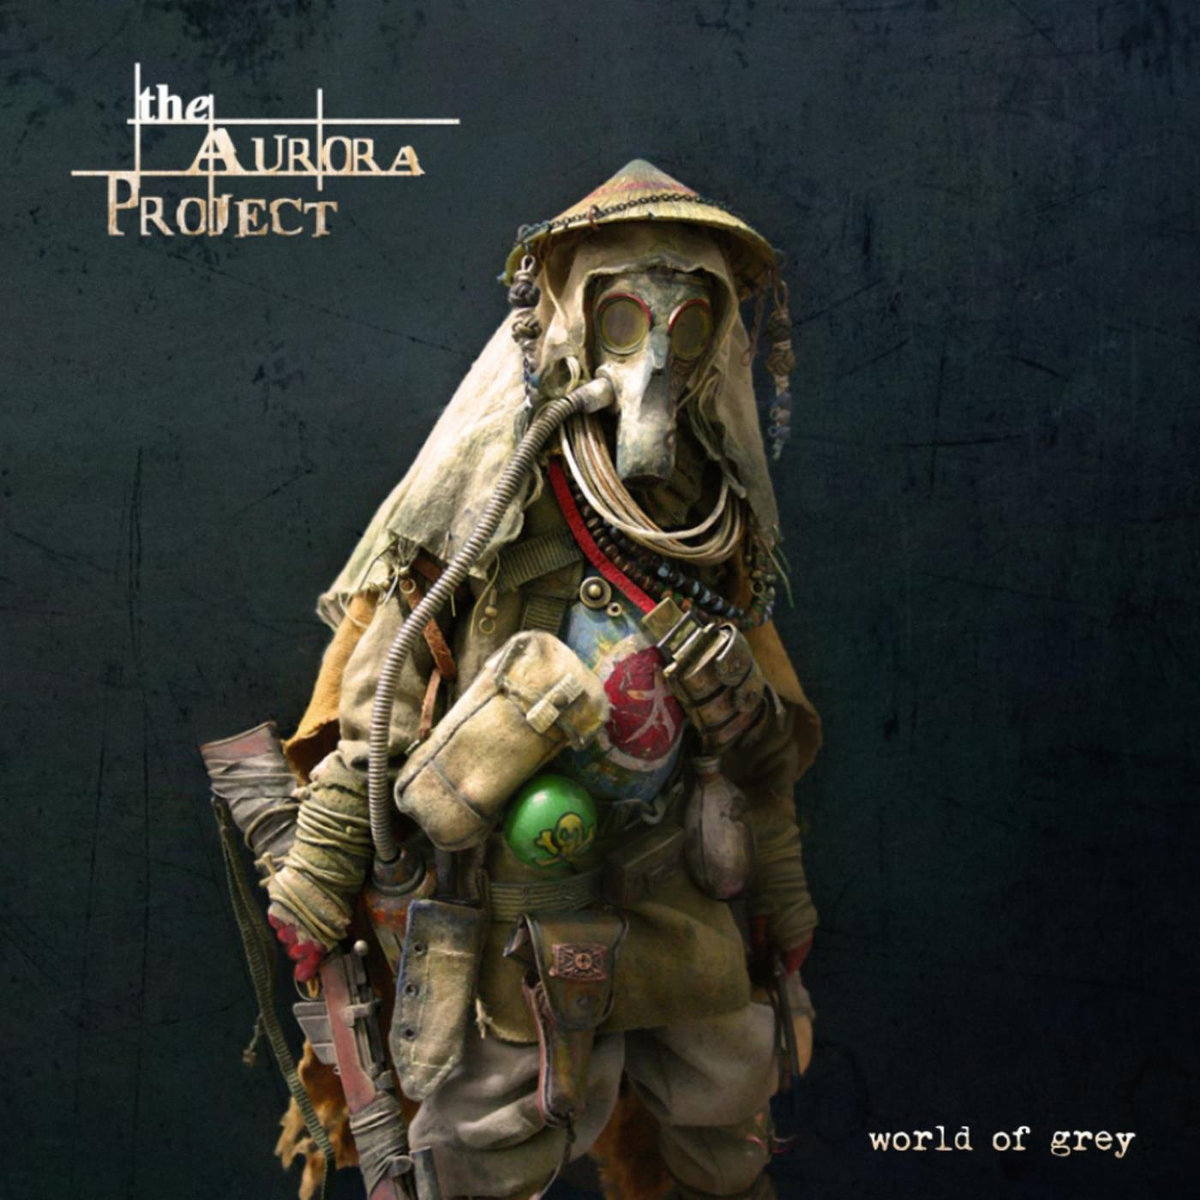 The Aurora Project: World of Grey